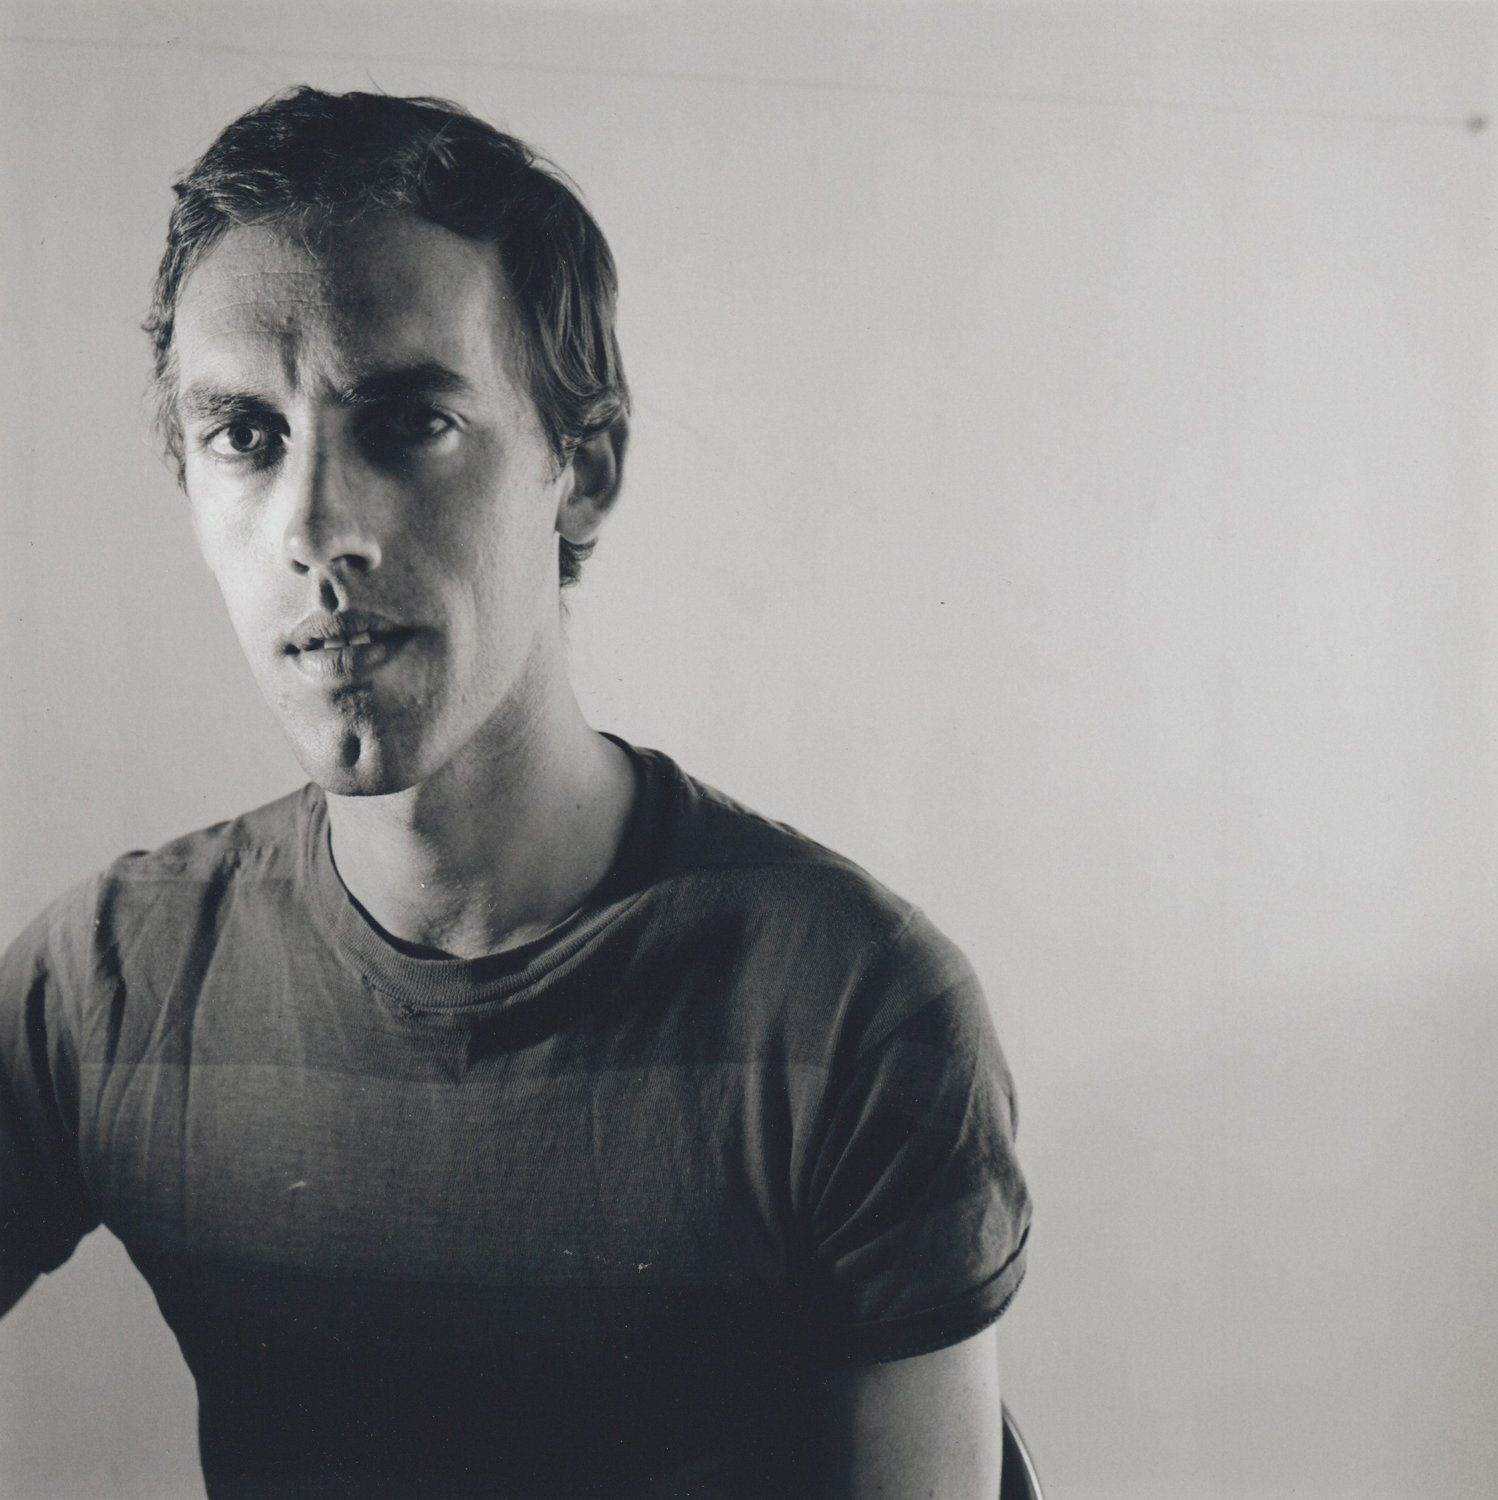 Many of Tim Greathouse's photographs are portraits of fellow artists, like this one of David Wojnarowicz.